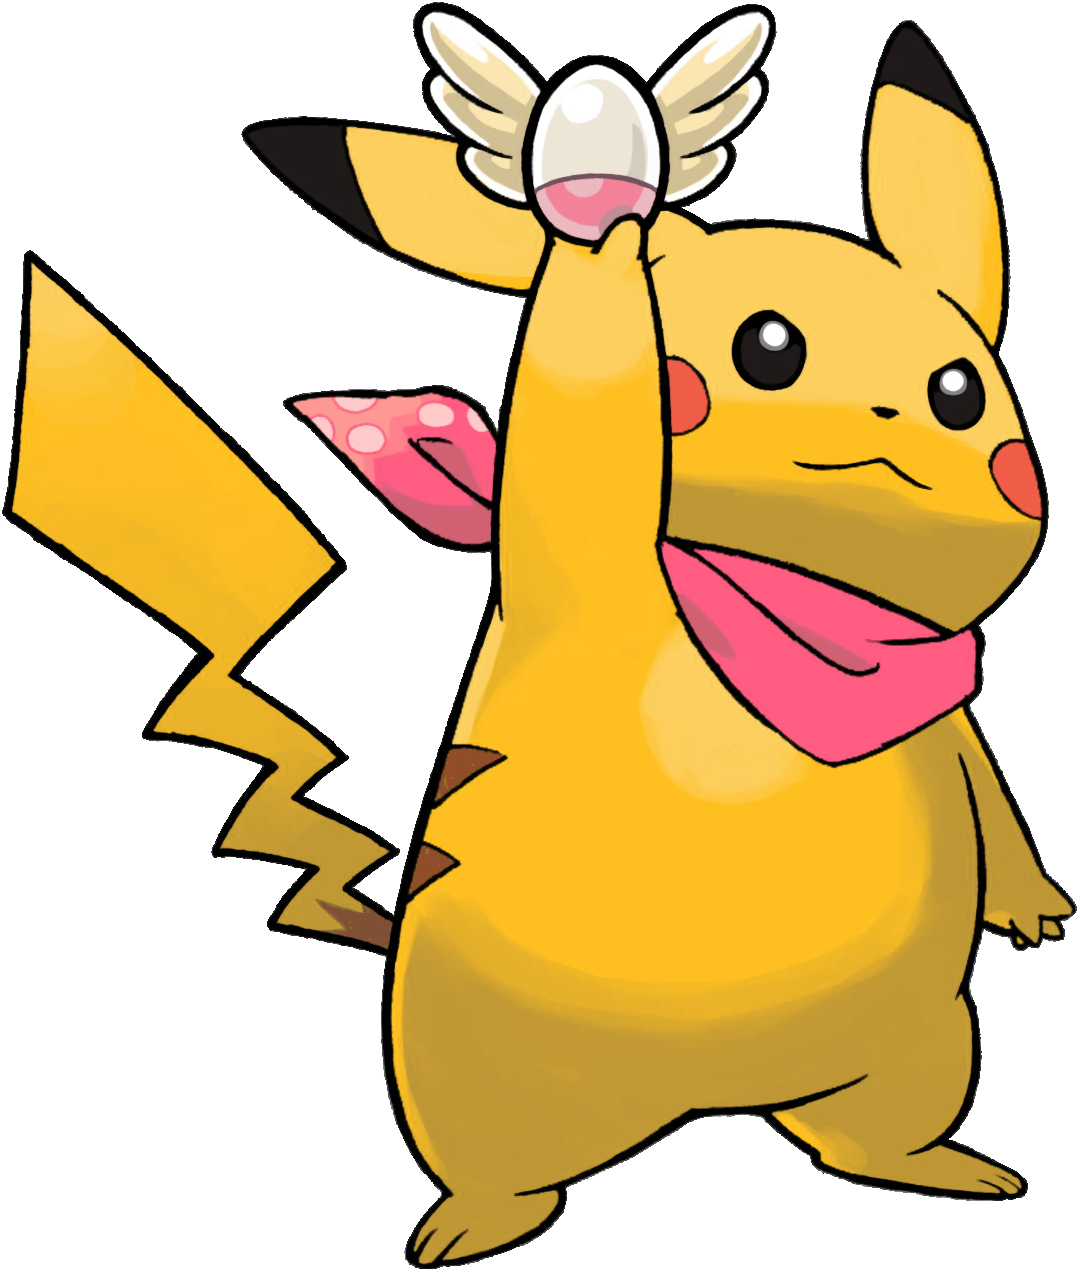 Pikachu clipart file. Image pmd shiny png